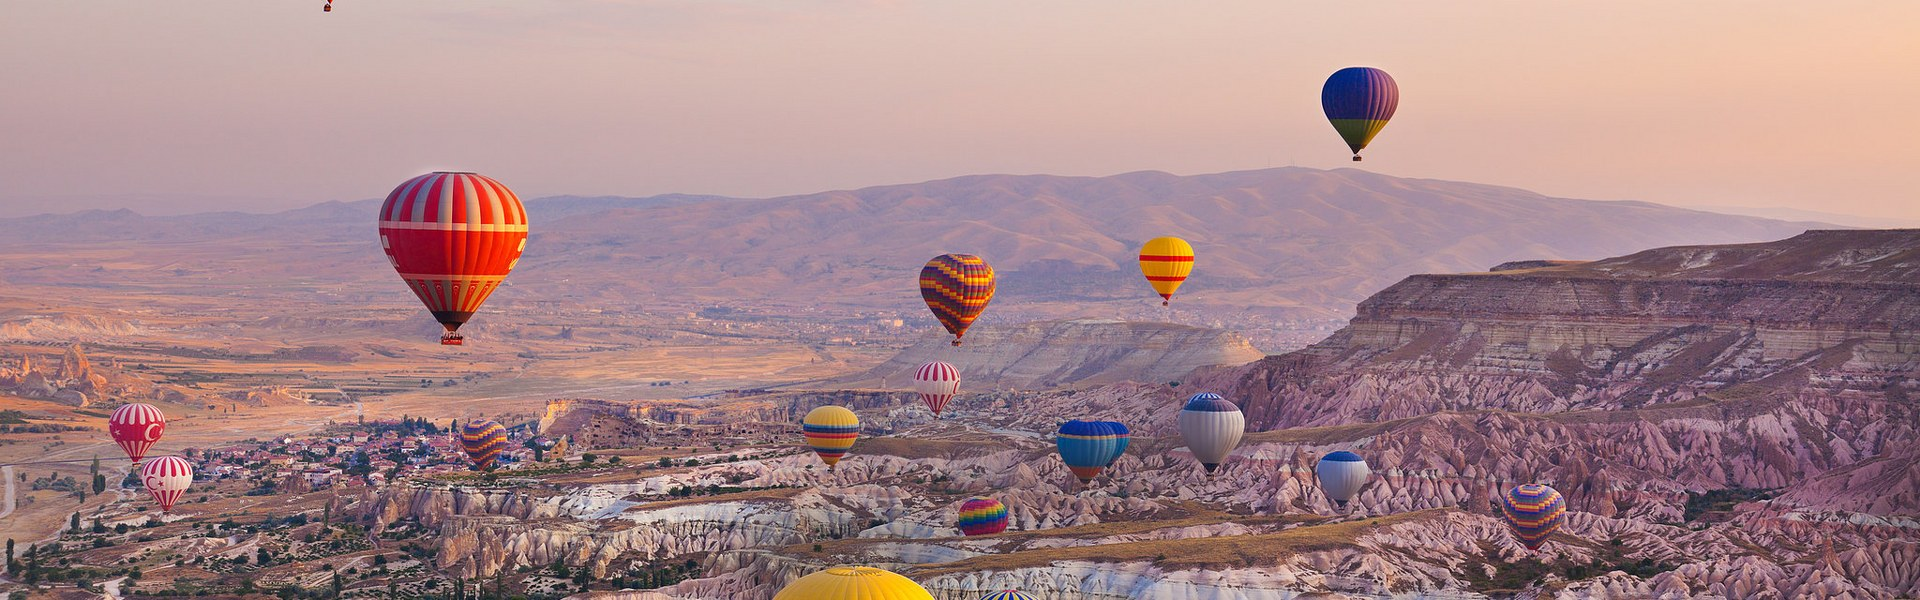 comfort cappadocia hot air balloon ride